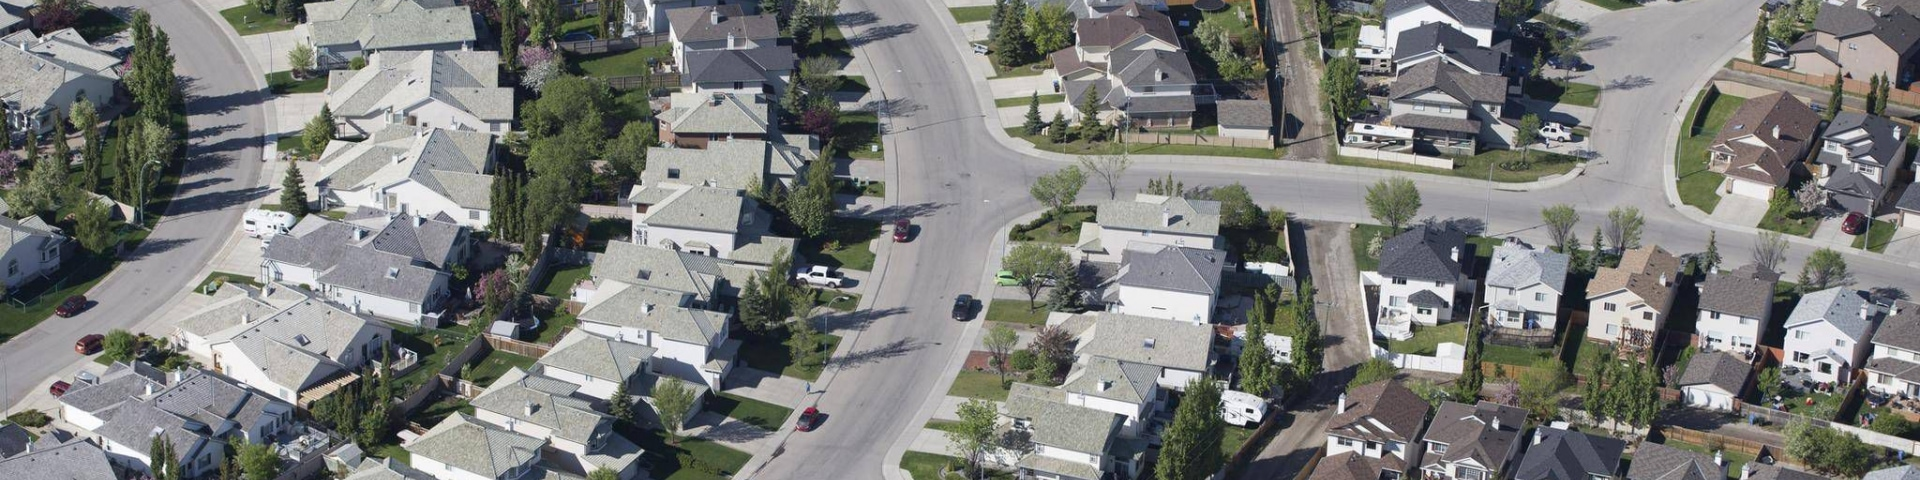 Birds-eye view of a Calgary community